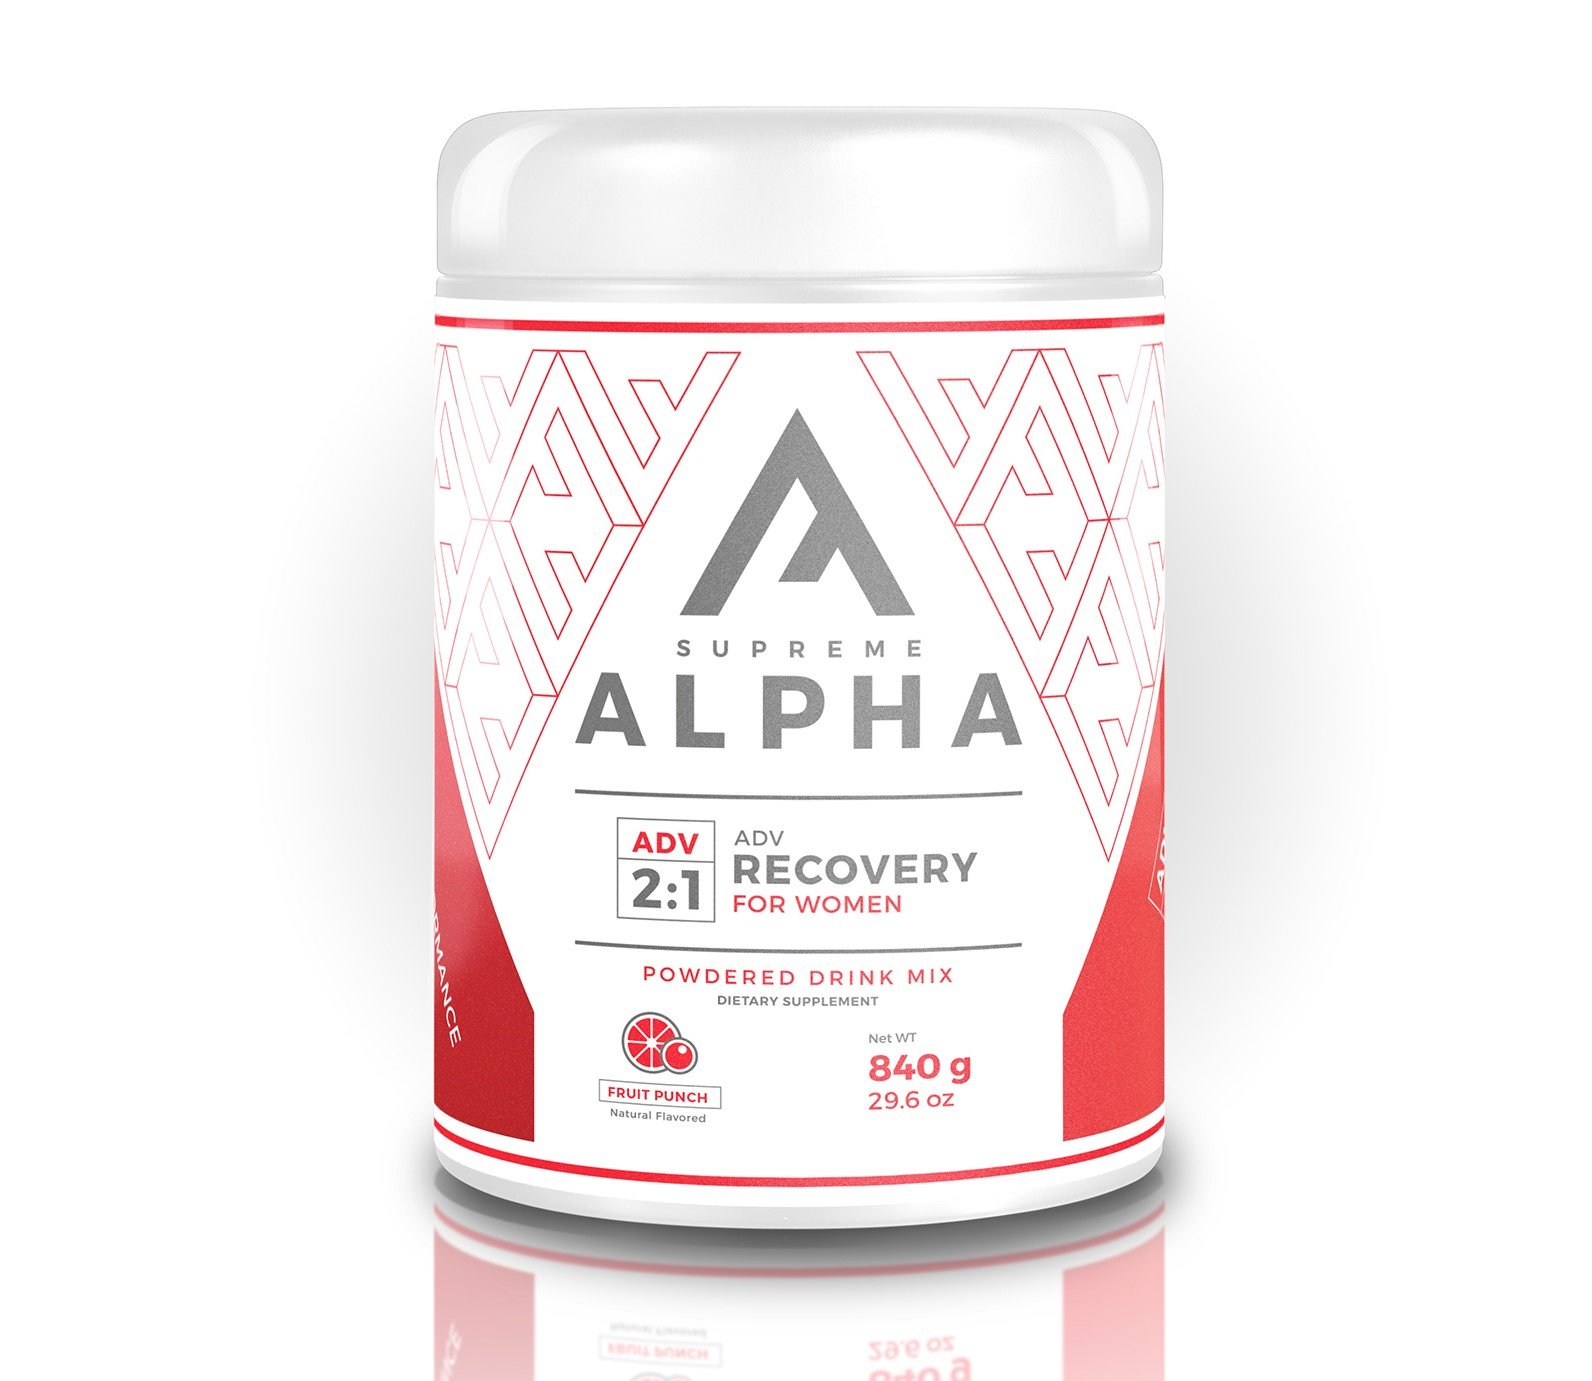 Supreme Alpha Advanced, Post Workout Recovery and Immune System Booster Supplement for Women, Muscle Builder with Protein Powder and Carbohydrates, BCAAs, Glutamine, Vitamin D,15 Large Servings